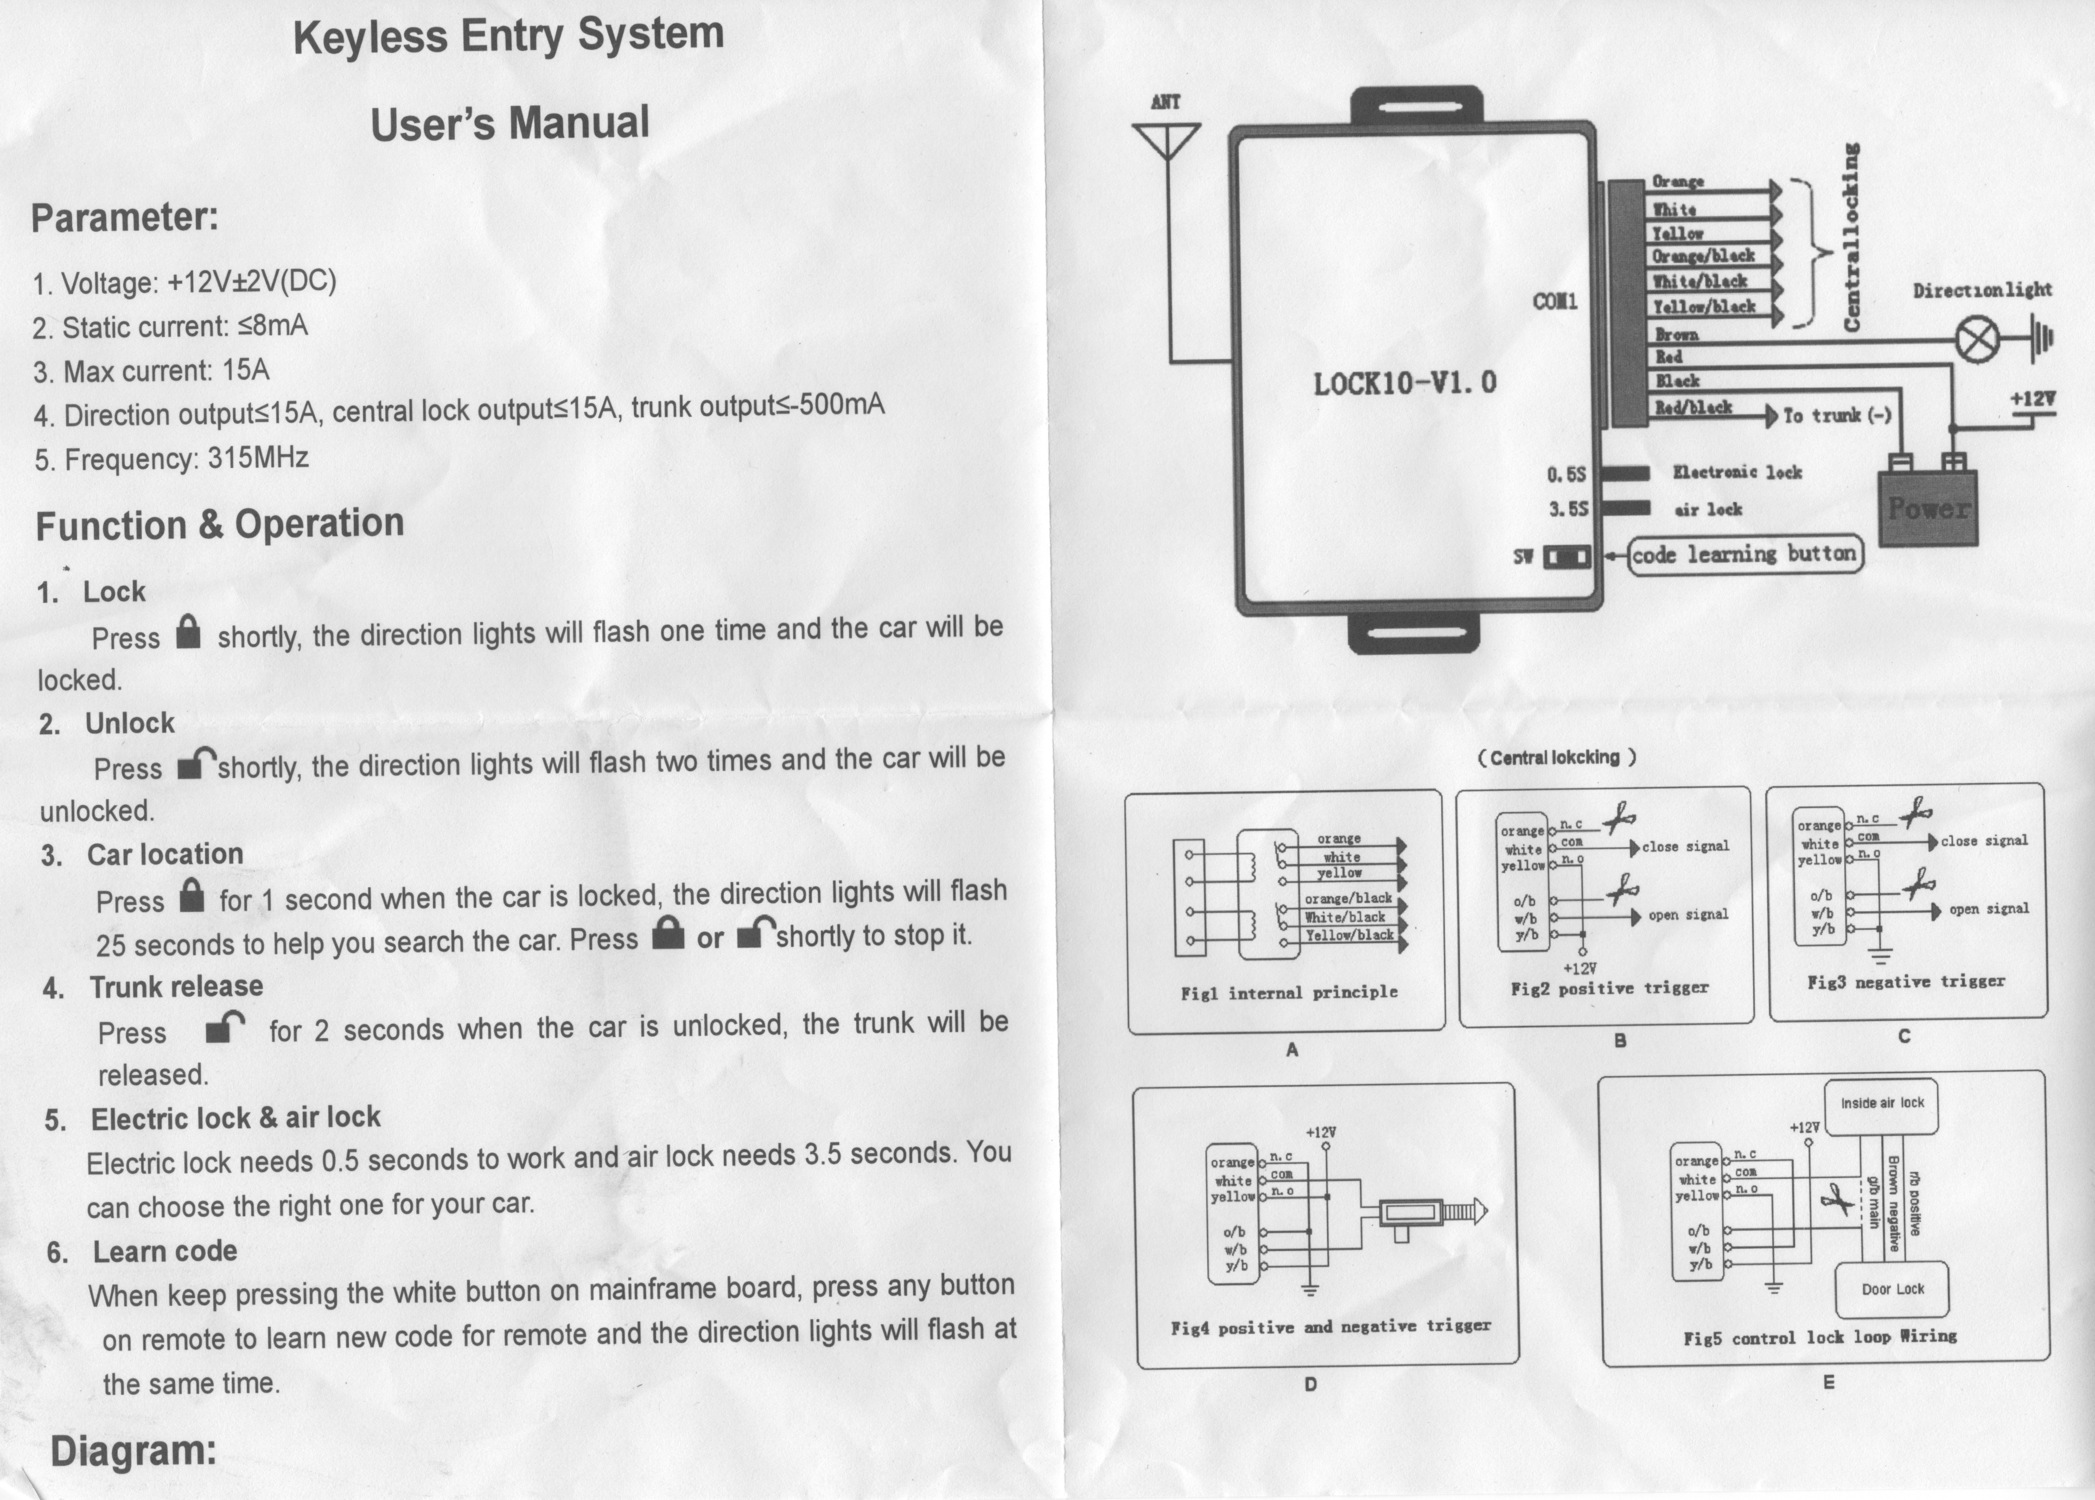 Remote Keyless Entry Wiring Diagram For Systems Beginners System To Garage Chinese Users Manual With Schematics